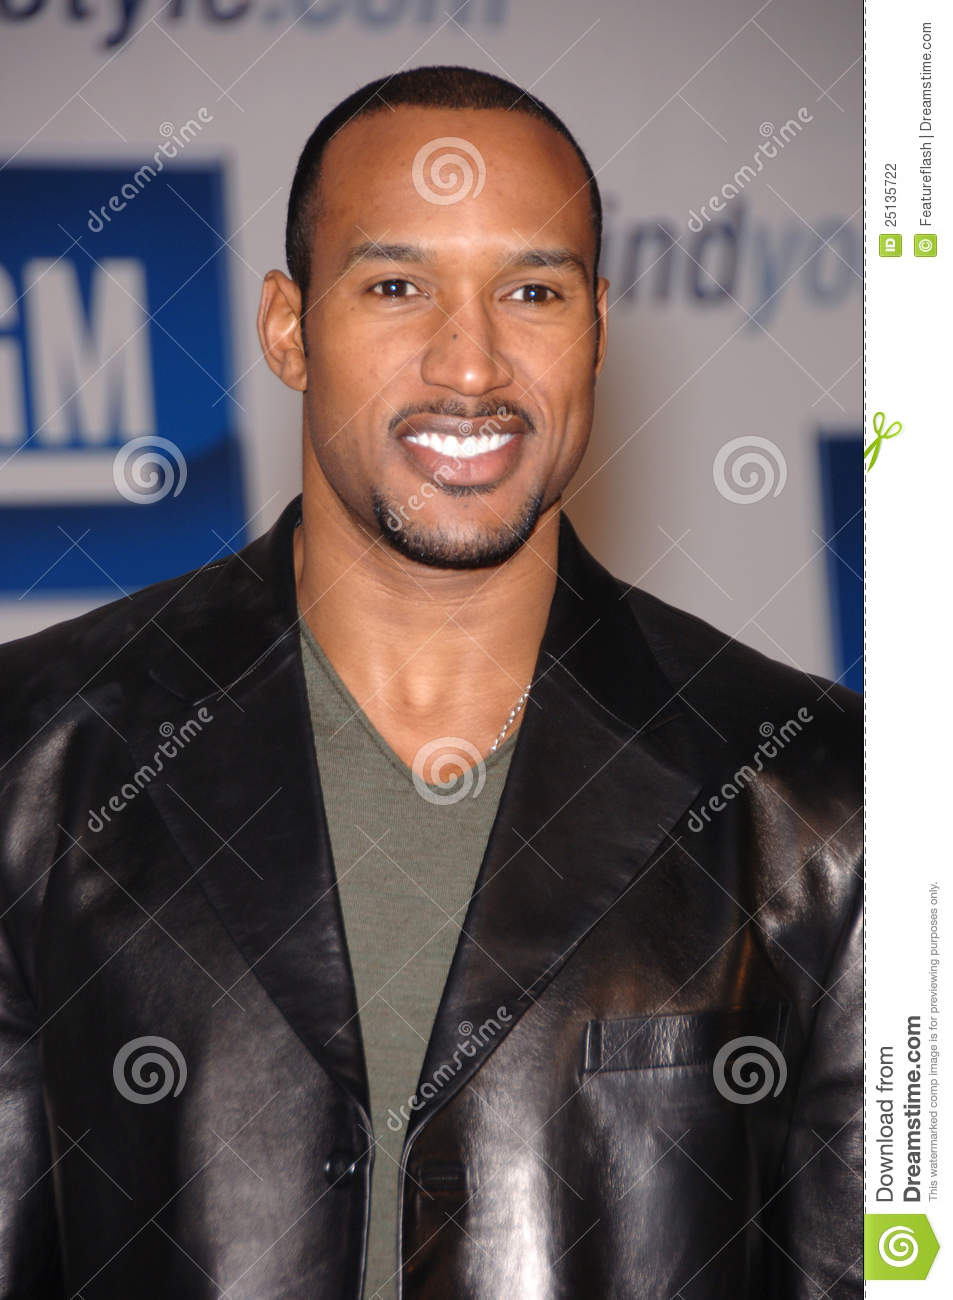 henry simmons instagramhenry simmons height, henry simmons bones, henry simmons instagram, henry simmons height and weight, henry simmons muscle, henry simmons twitter, henry simmons, henry simmons wife, henry simmons agents of shield, henry simmons wiki, henry simmons boris kodjoe, henry simmons net worth, henry simmons imdb, henry simmons movies and tv shows, henry simmons twin sister, henry simmons shirtless, henry simmons alzheimer scotland, henry simmons facebook, henry simmons workout, henry simmons and sophina brown